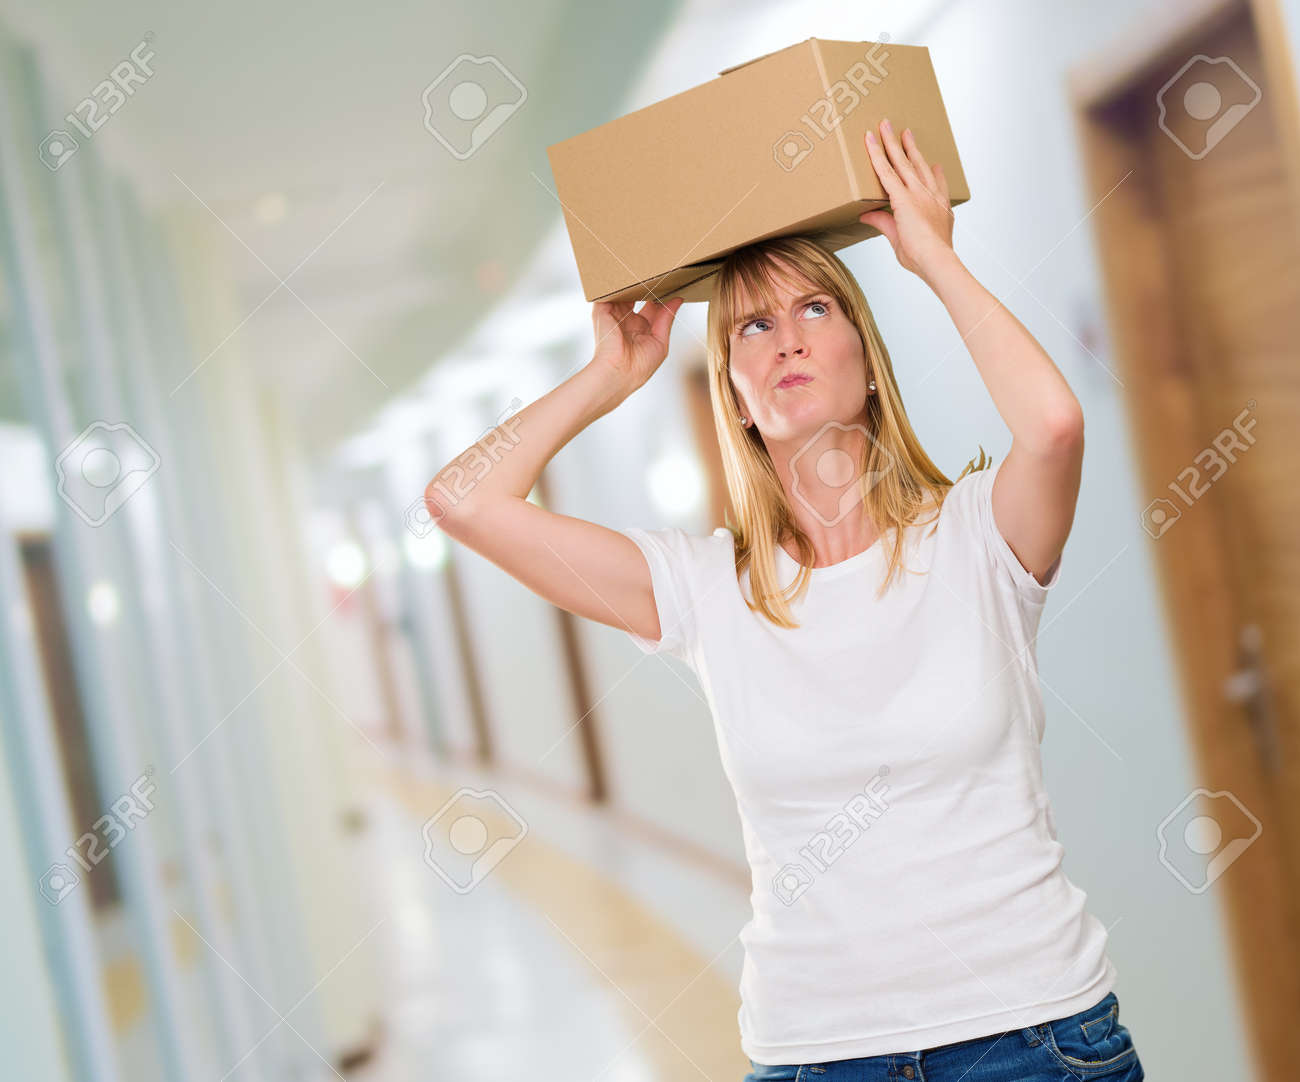 woman holding a box on her head in a passage way Stock Photo - 16672464